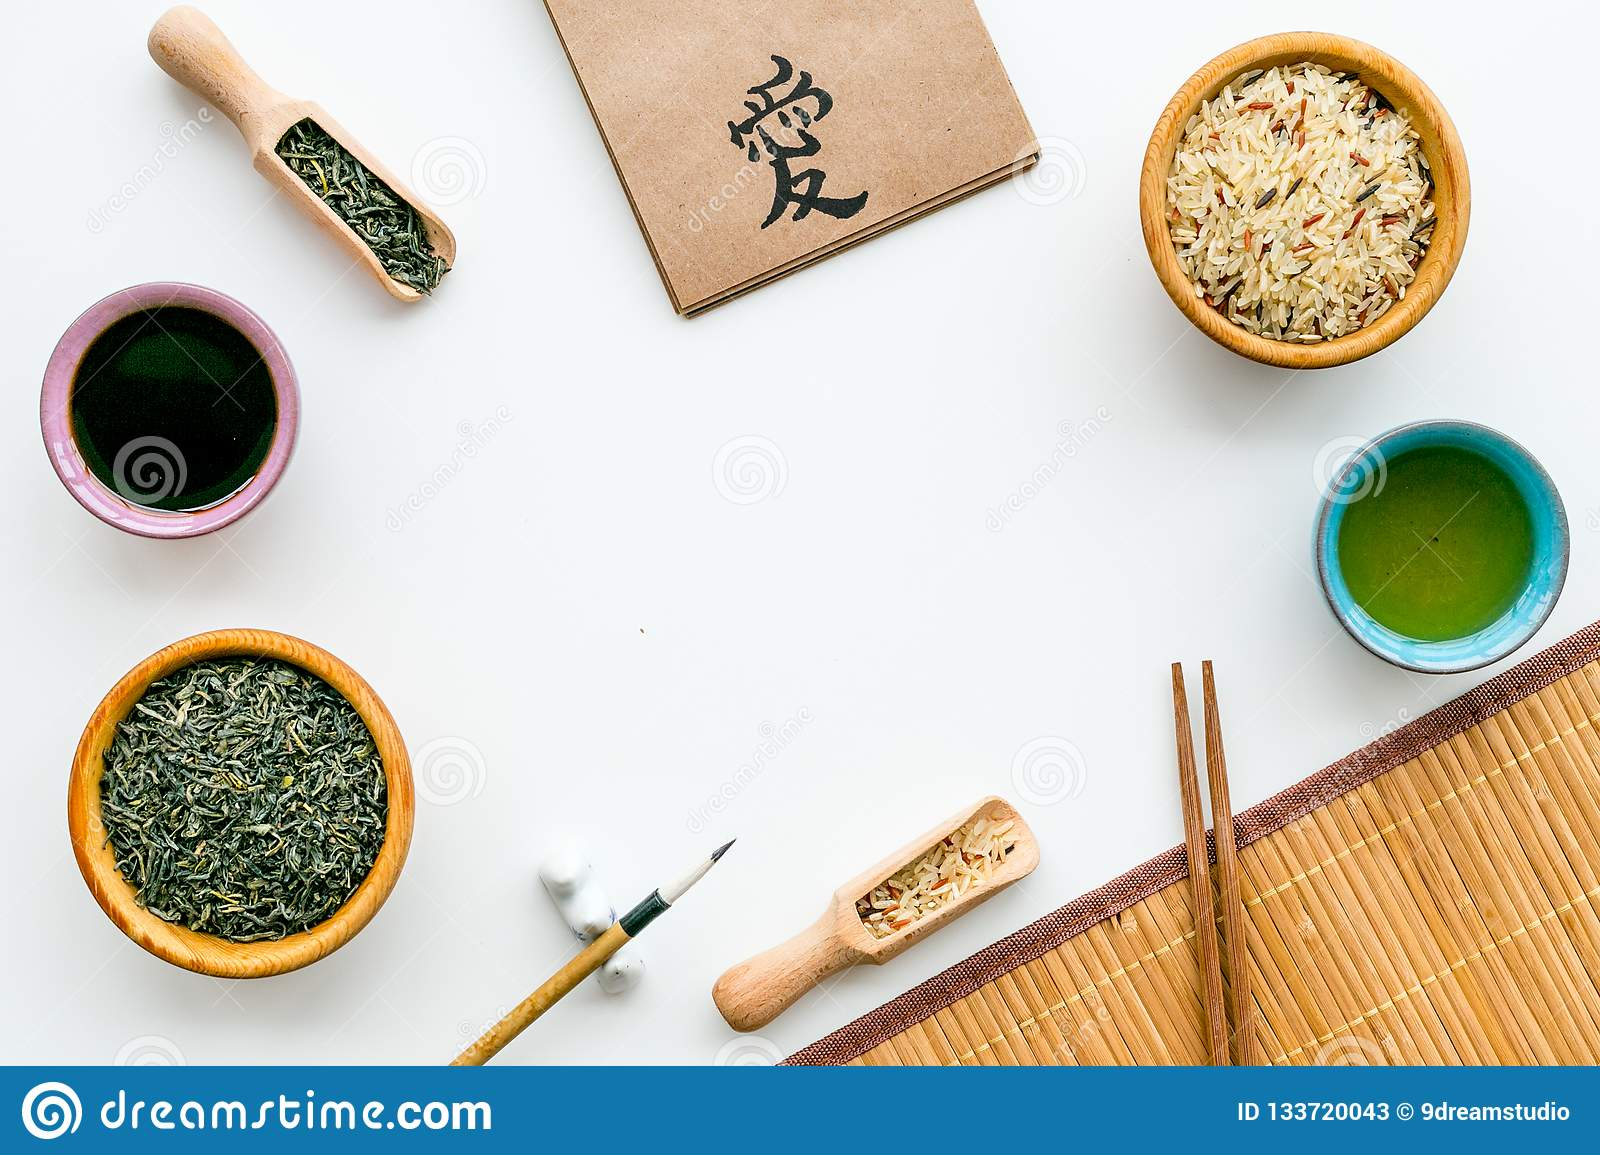 Chinese traditional symbols concept with hieroglyph which means Love. in english. Tea, rice, hieroglyph love, bamboo